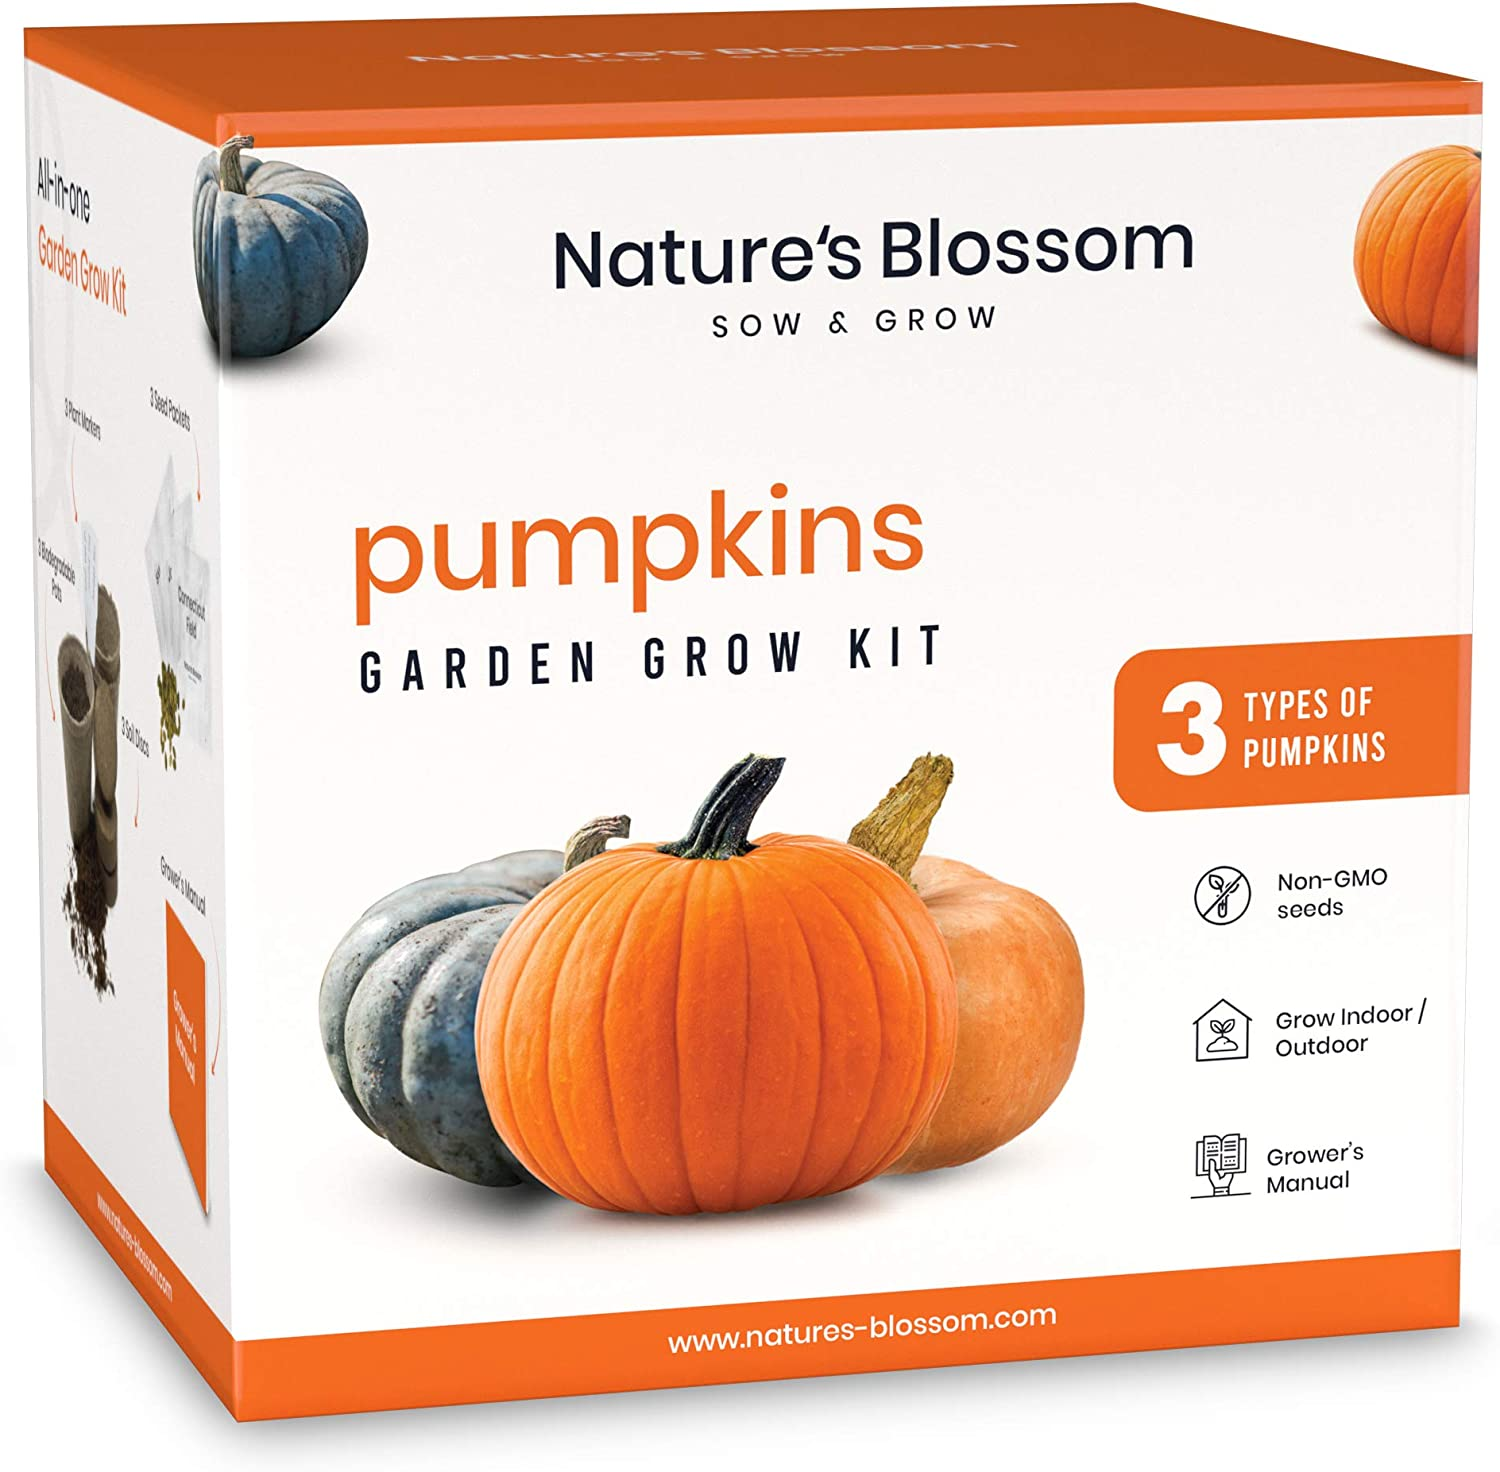 Nature's Blossom Pumpkins Garden Growing Kit - Seed Starting Gardening Set with Everything a Beginner Gardener Needs to Grow 3 Types of Pumpkins from Seeds.